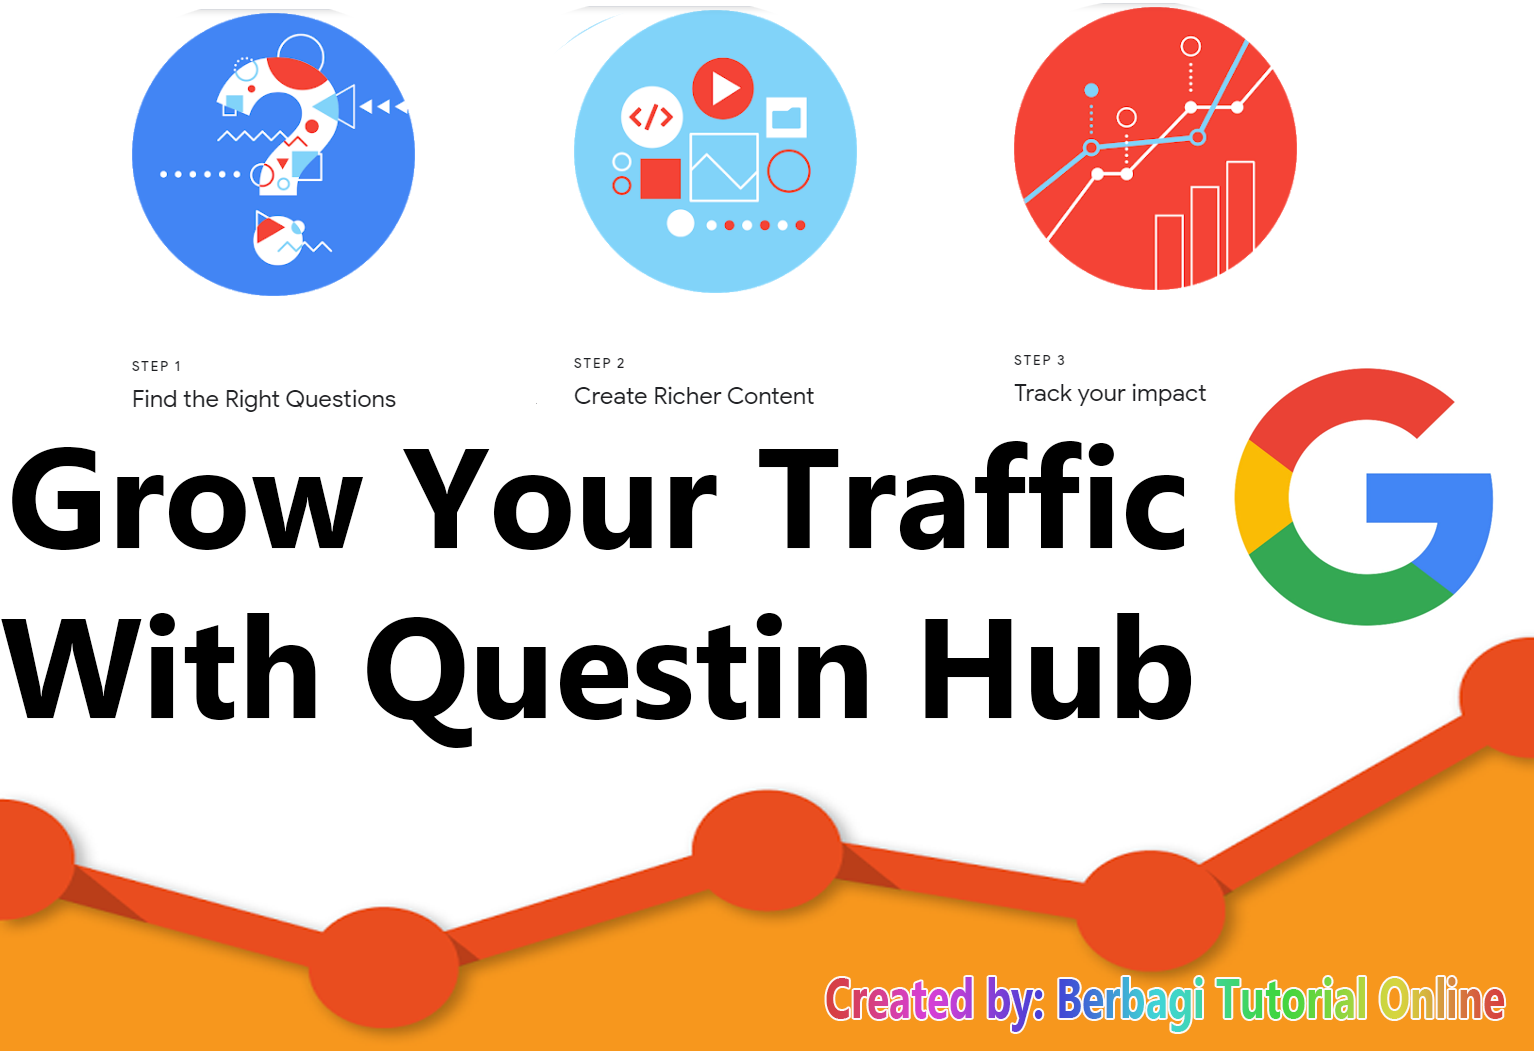 Optimasi Traffic QuestionHub